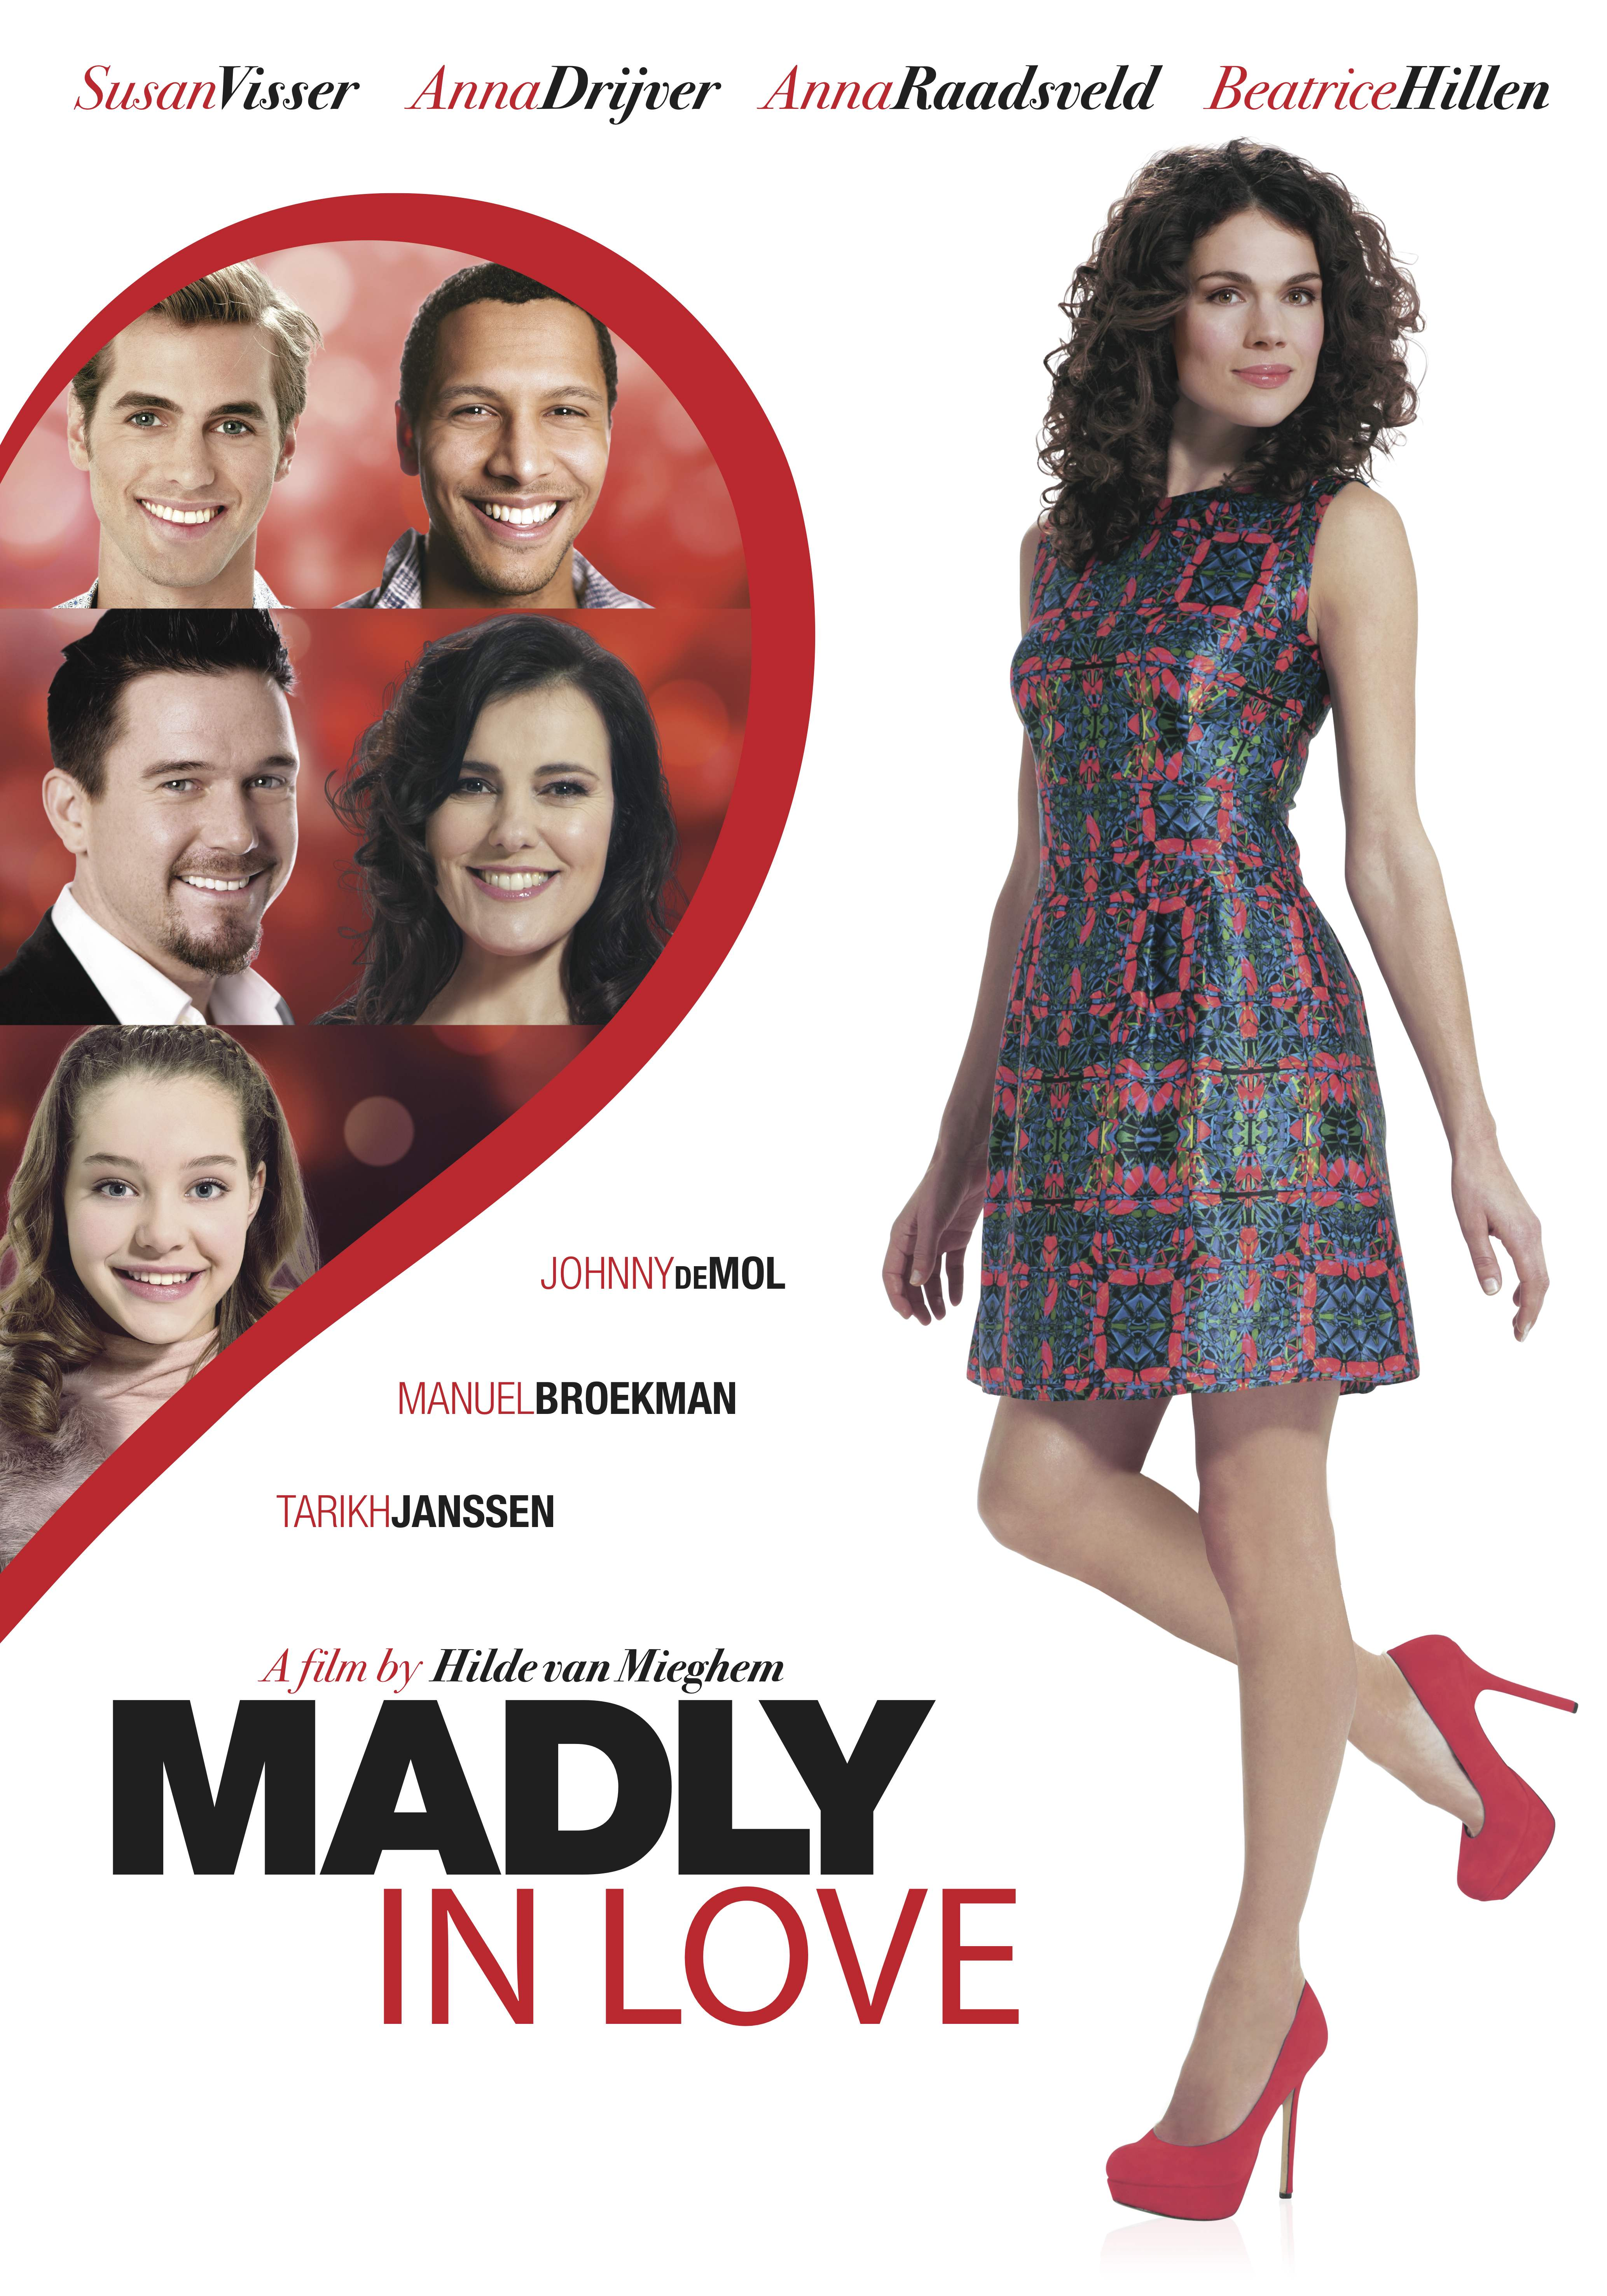 Madly in love the movie